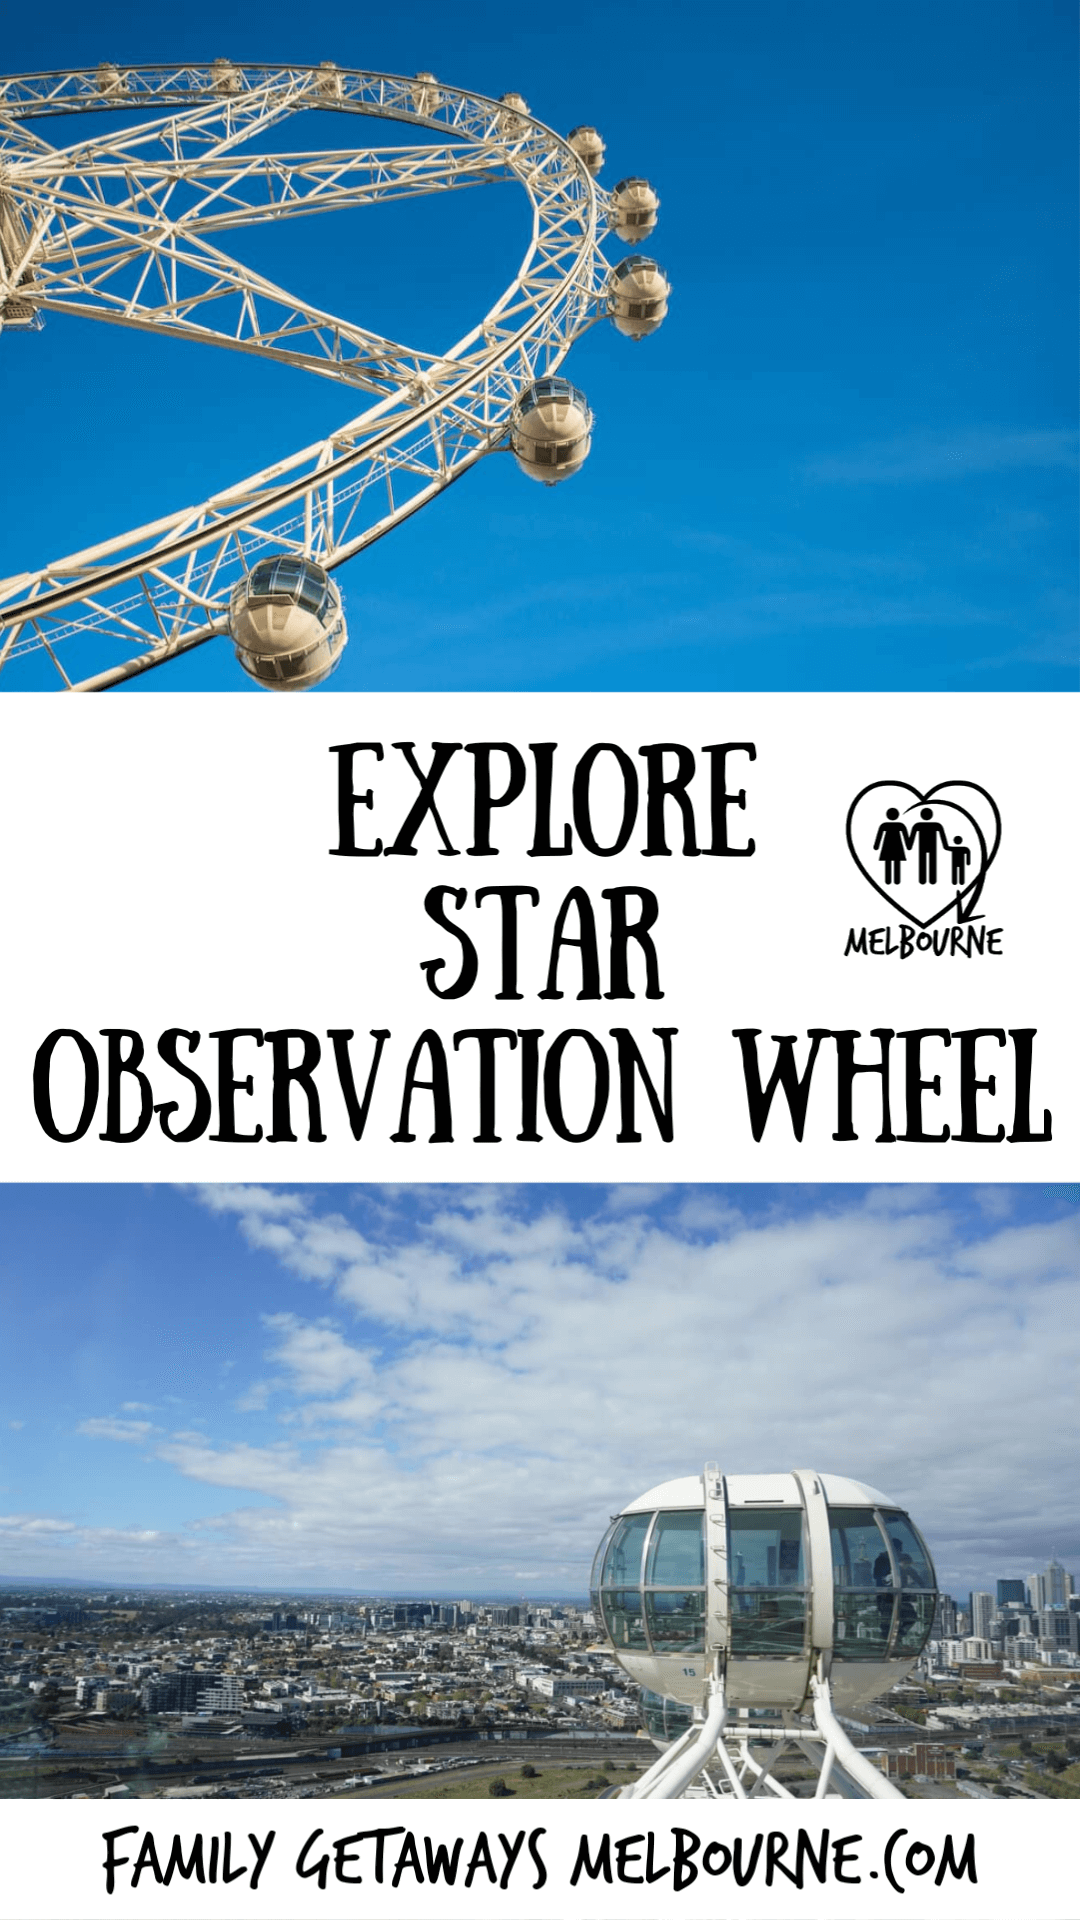 image to pin to pinterest for the Melbourne Star Observation Wheel